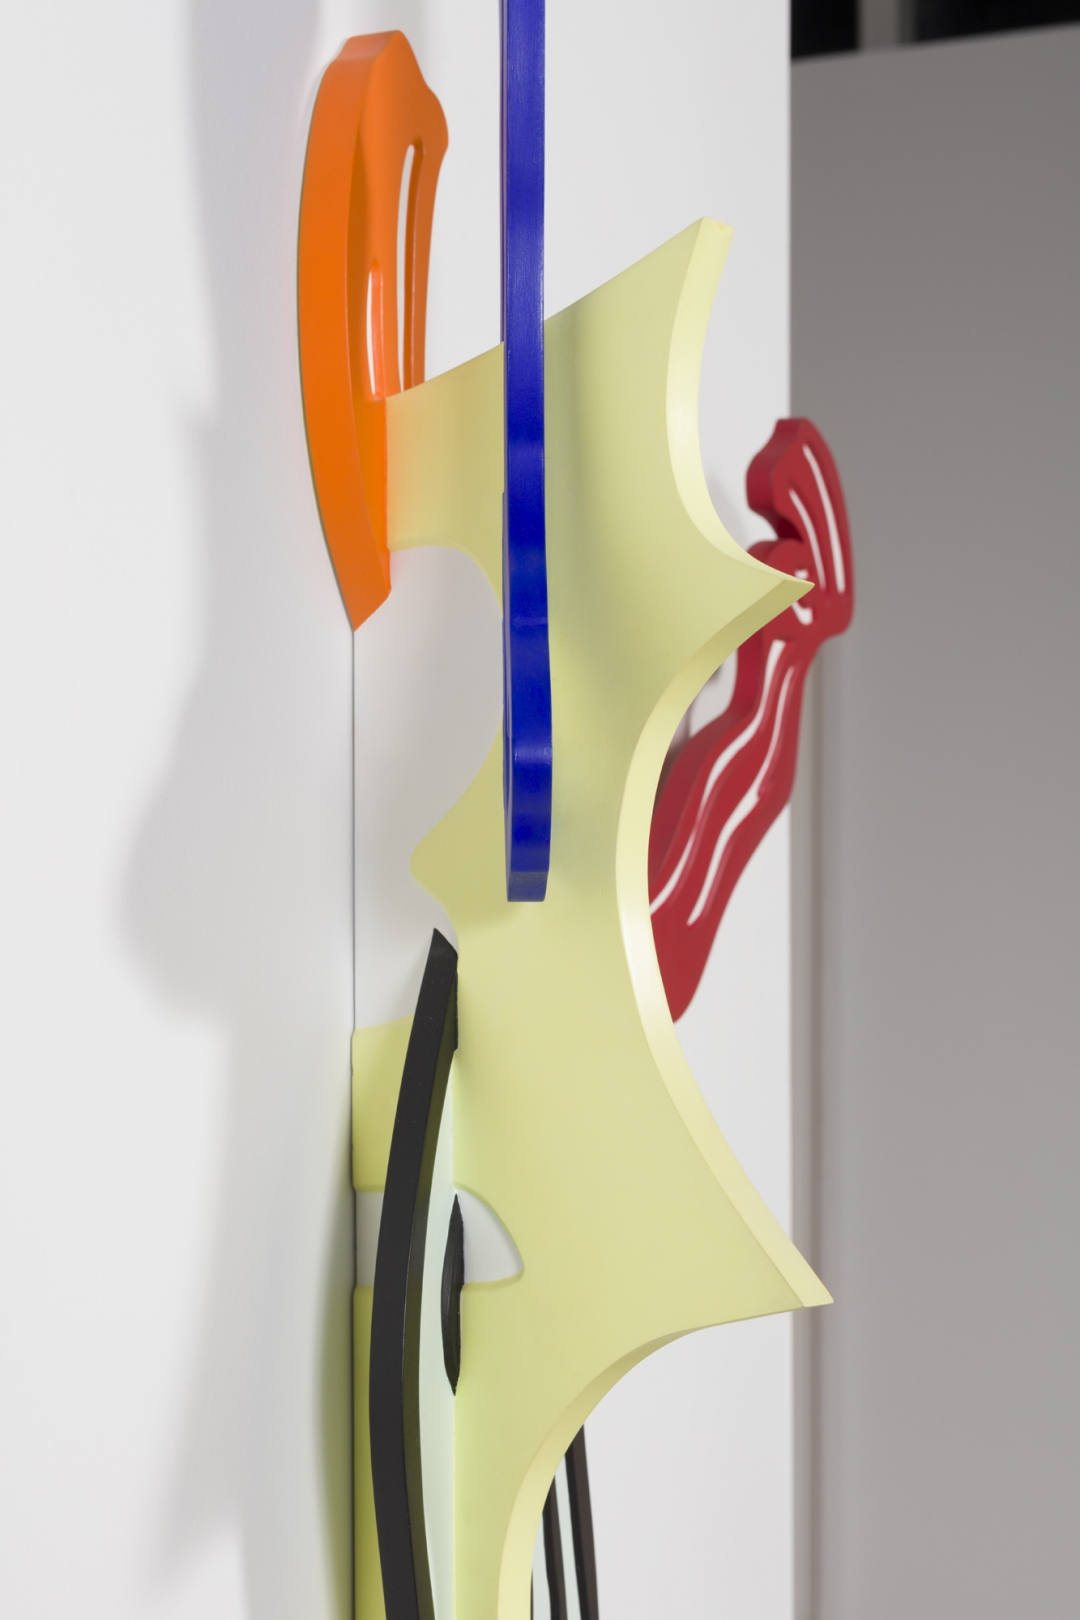 Roy Lichtenstein, <i>Brushstroke II</i>, 1986, Hand painted cherry wood sculpture, 64h x 34w x 8d in (162.56h x 86.36w x 20.32d cm), #9 out of 10